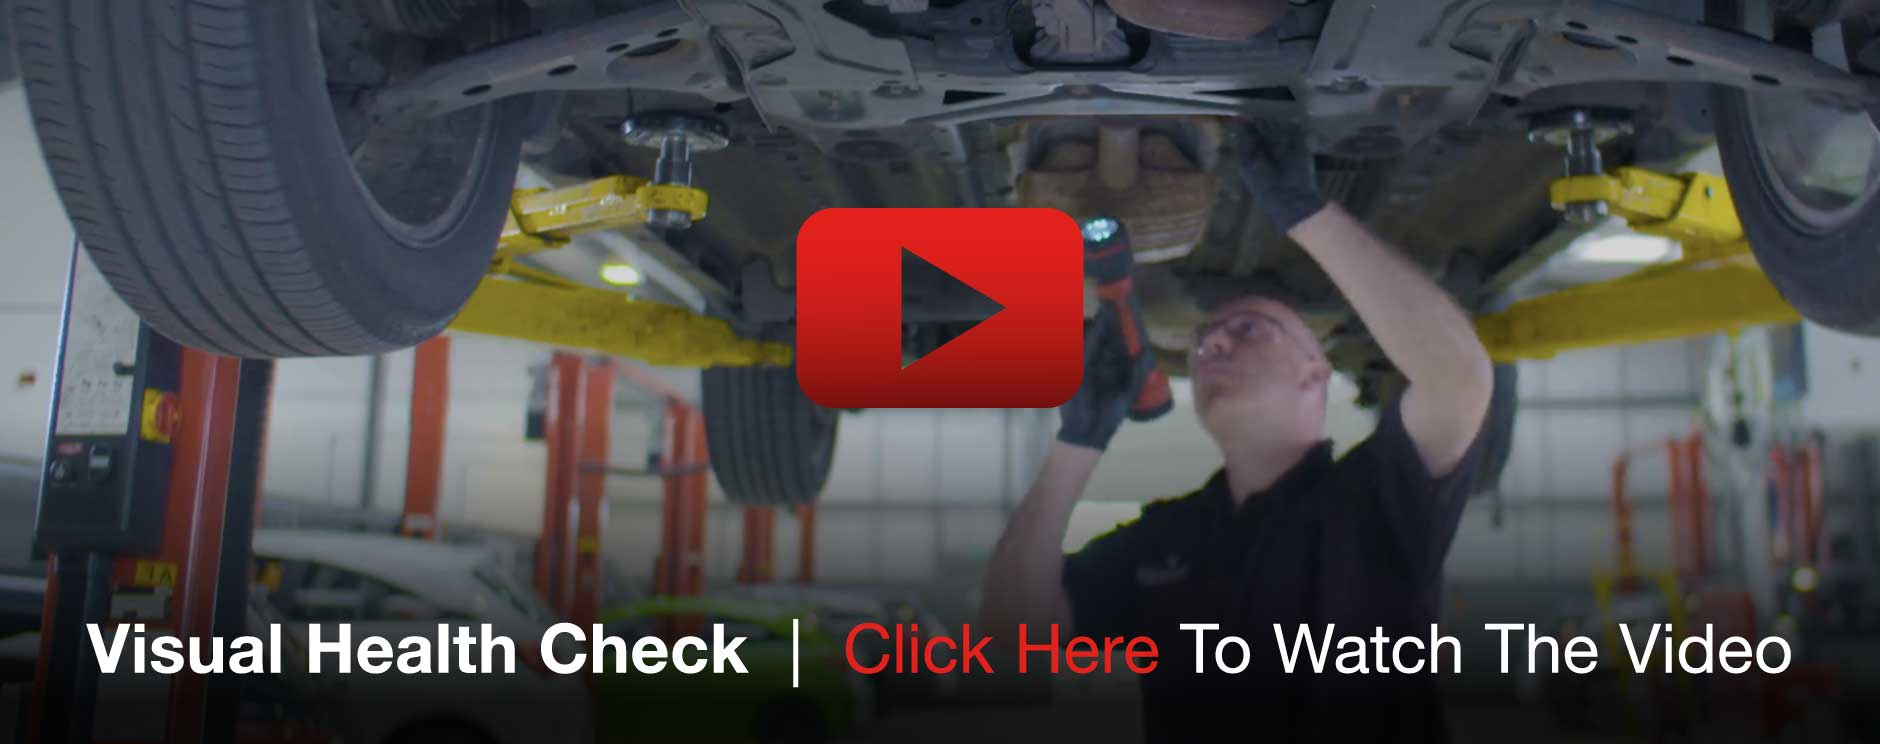 Visual Health Check Video - Bristol Street Motors